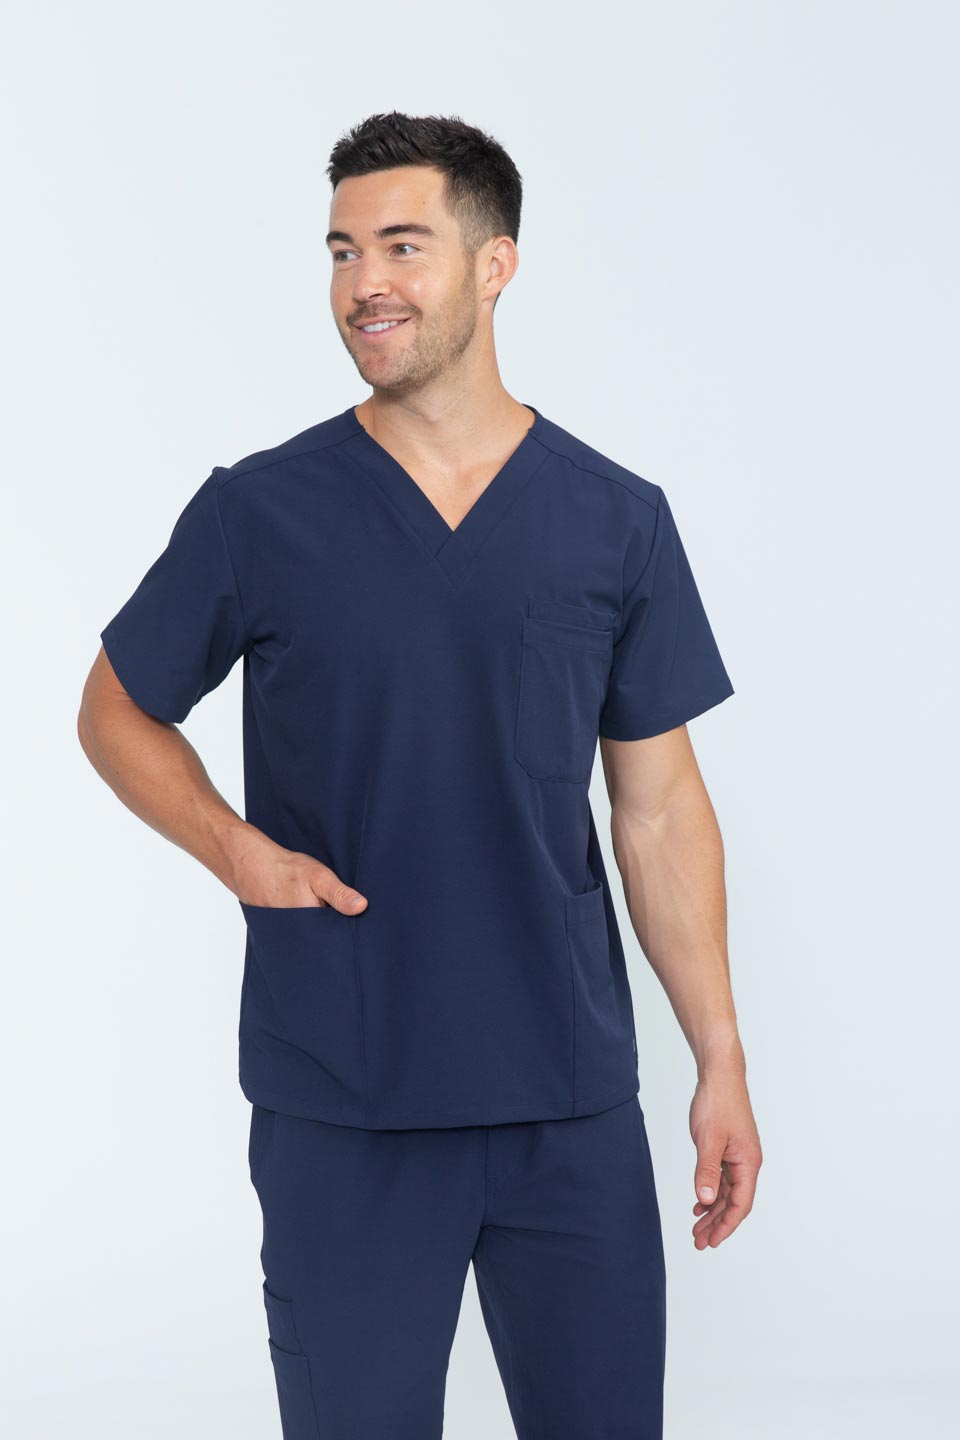 Kalea - Mens Rhapsody Scrub Top - Navy